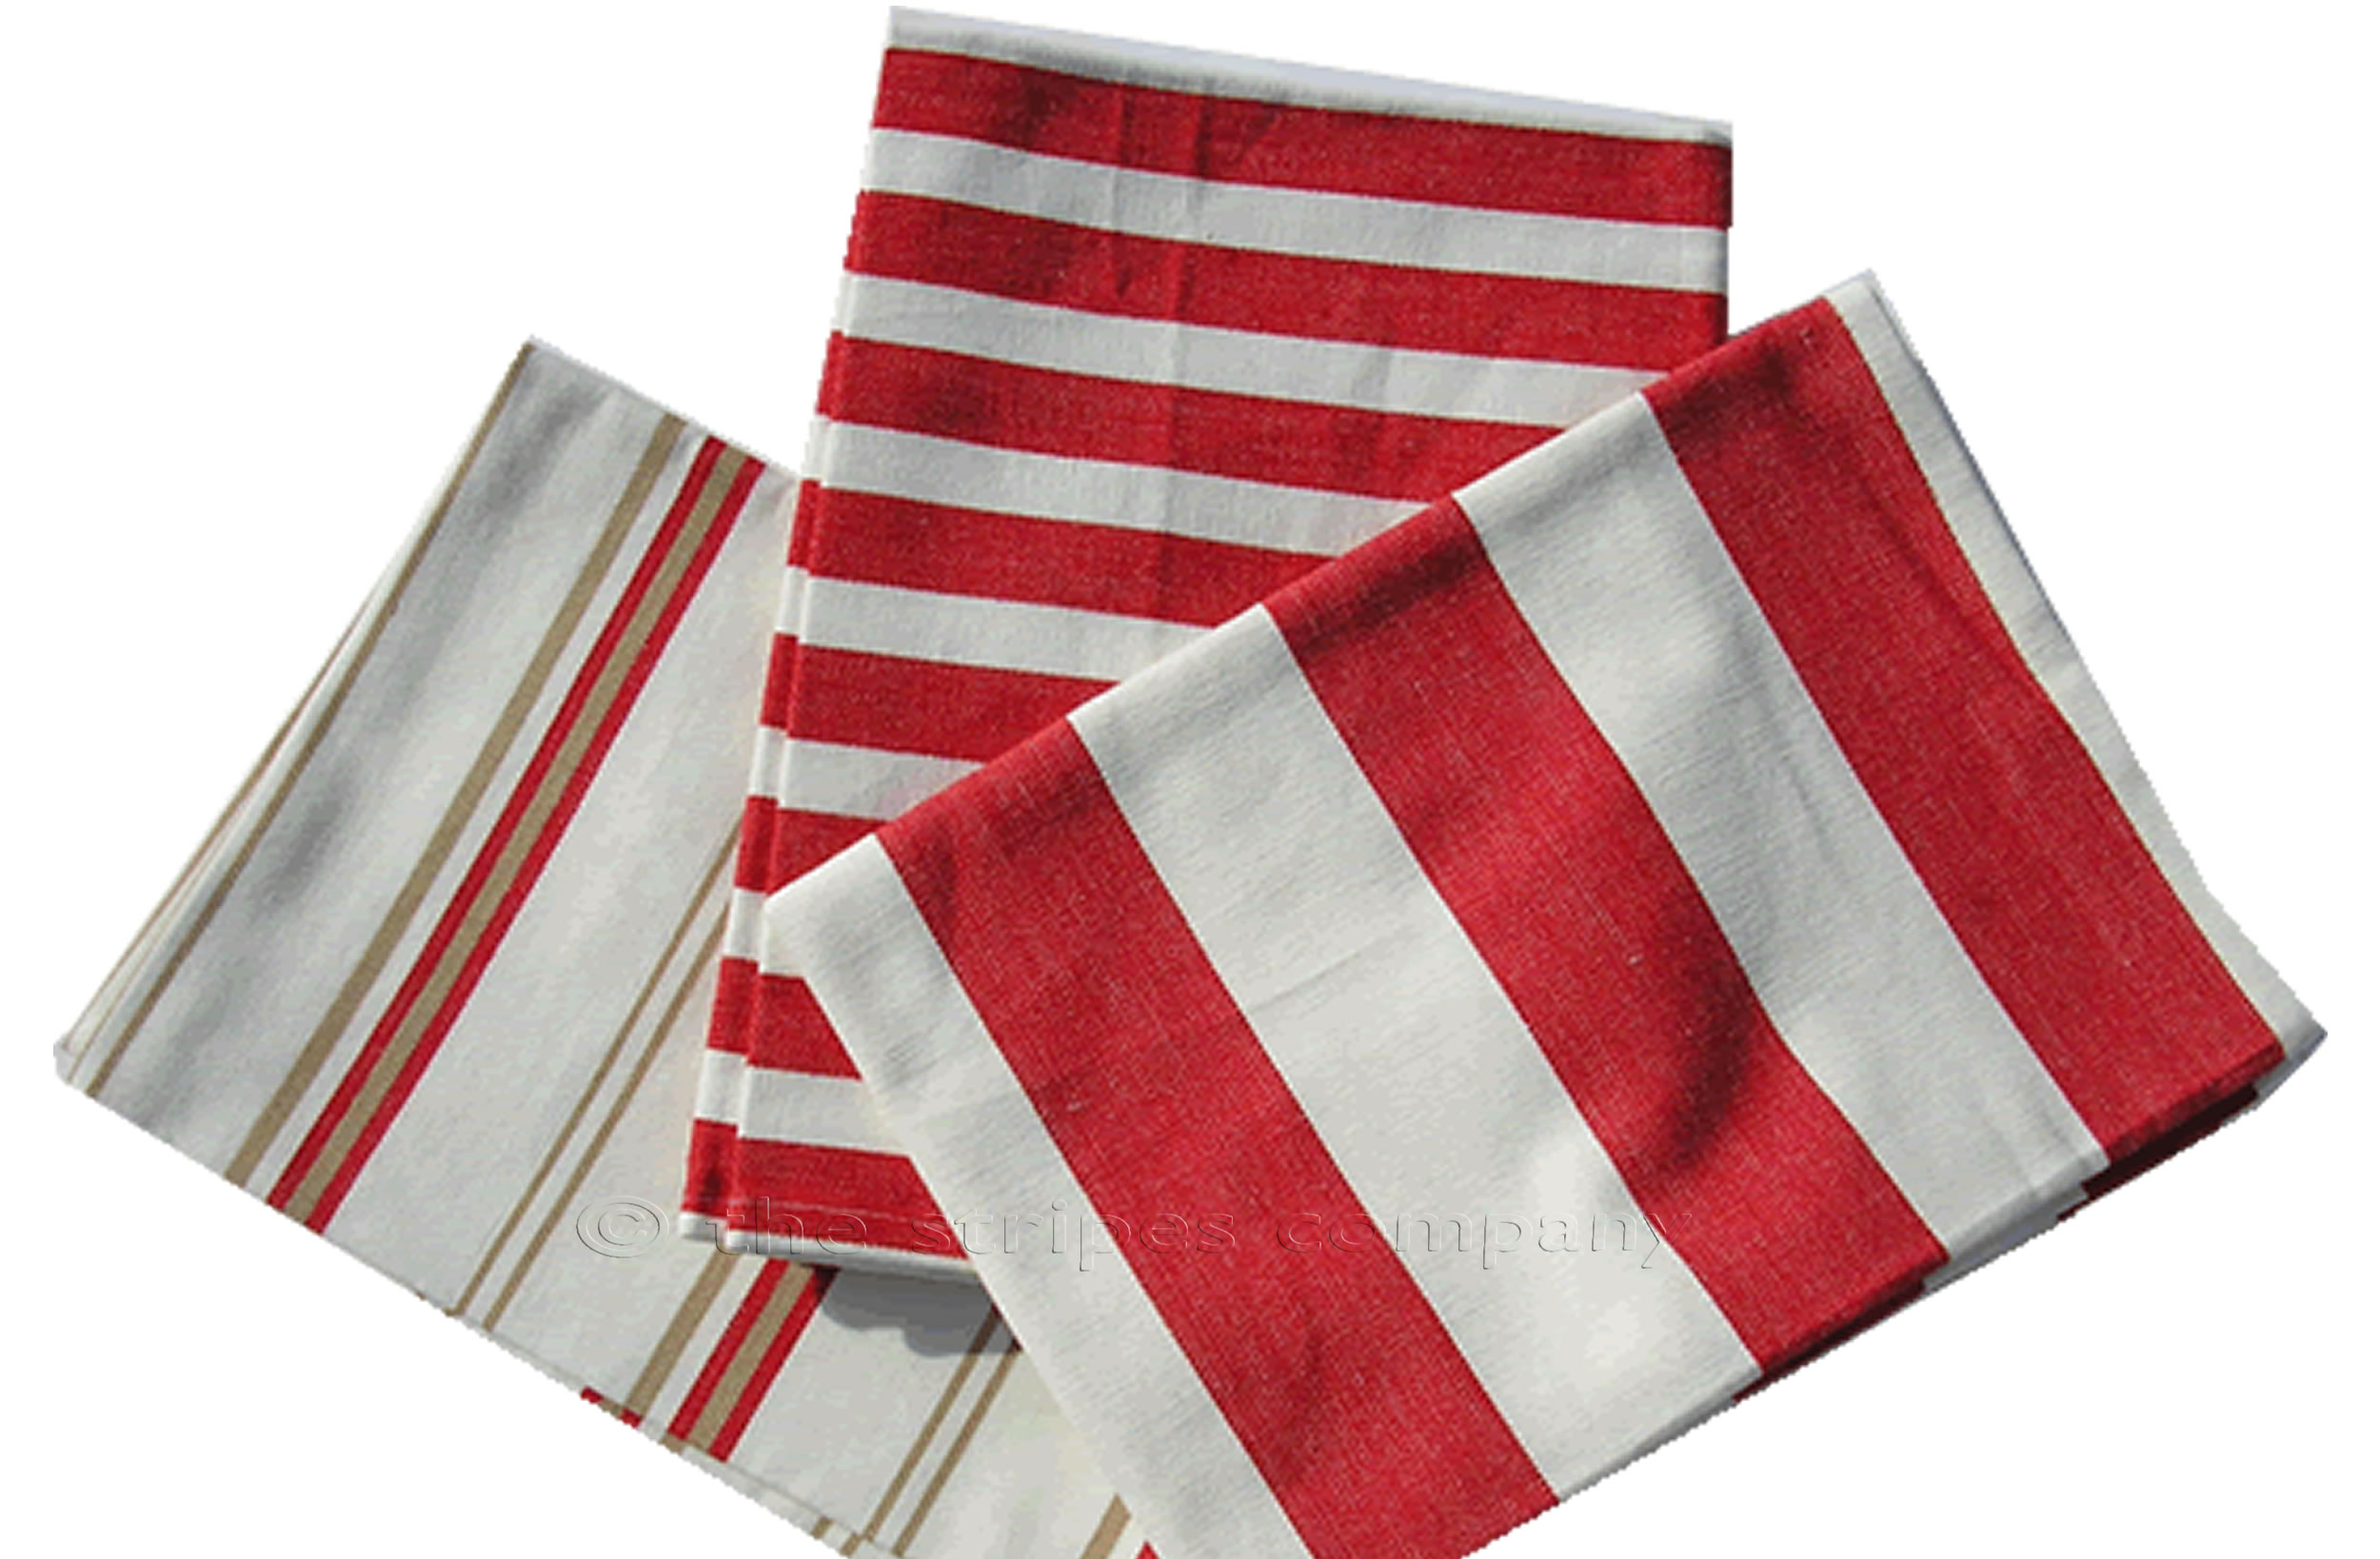 Red And White Striped Tea Towels Set Of 3